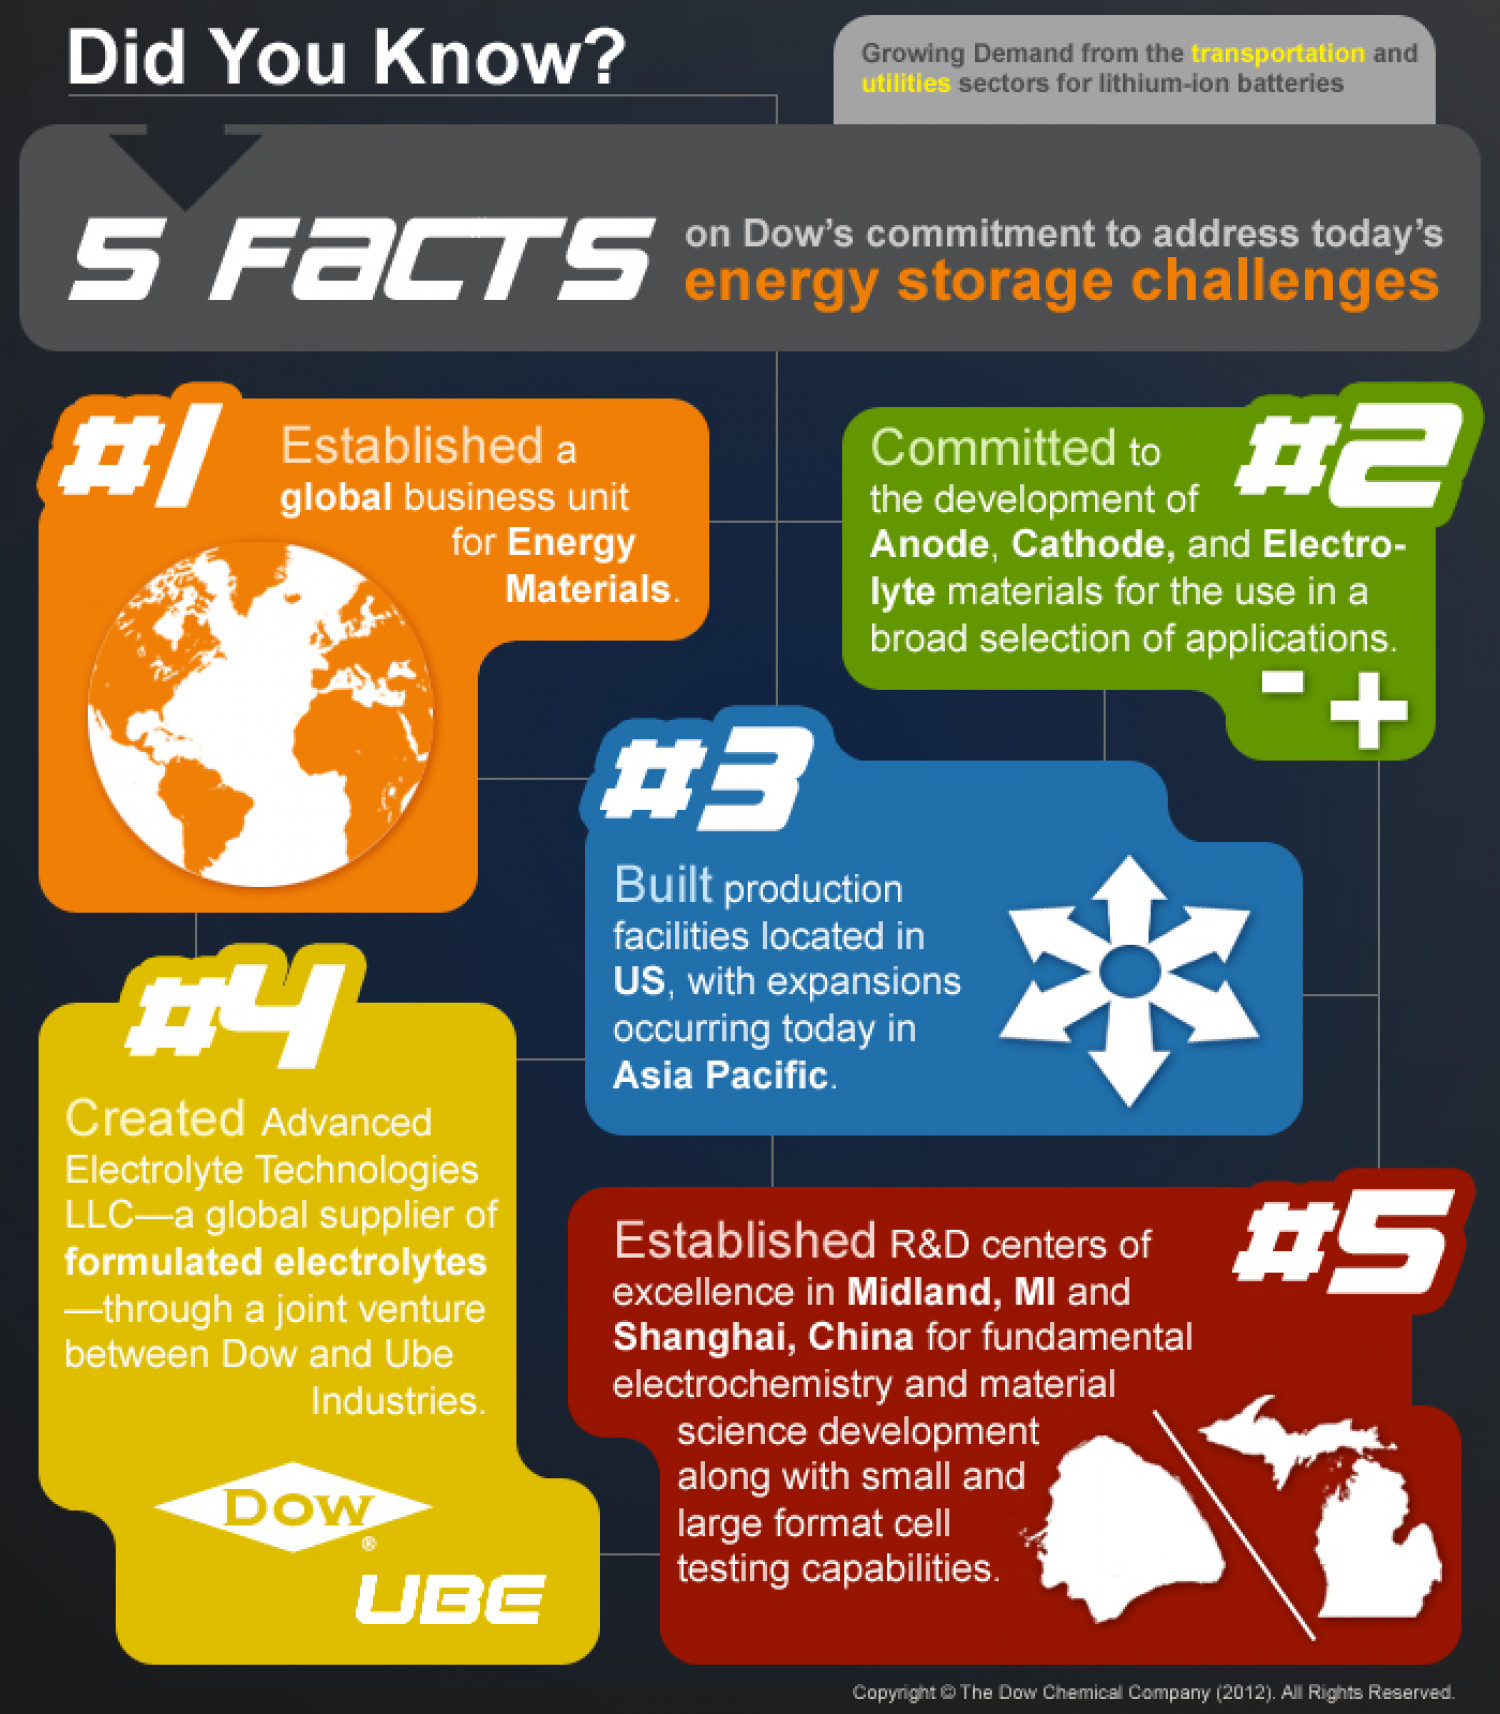 5 Facts on Dow's Commitment to address today's energy storage challenges Infographic